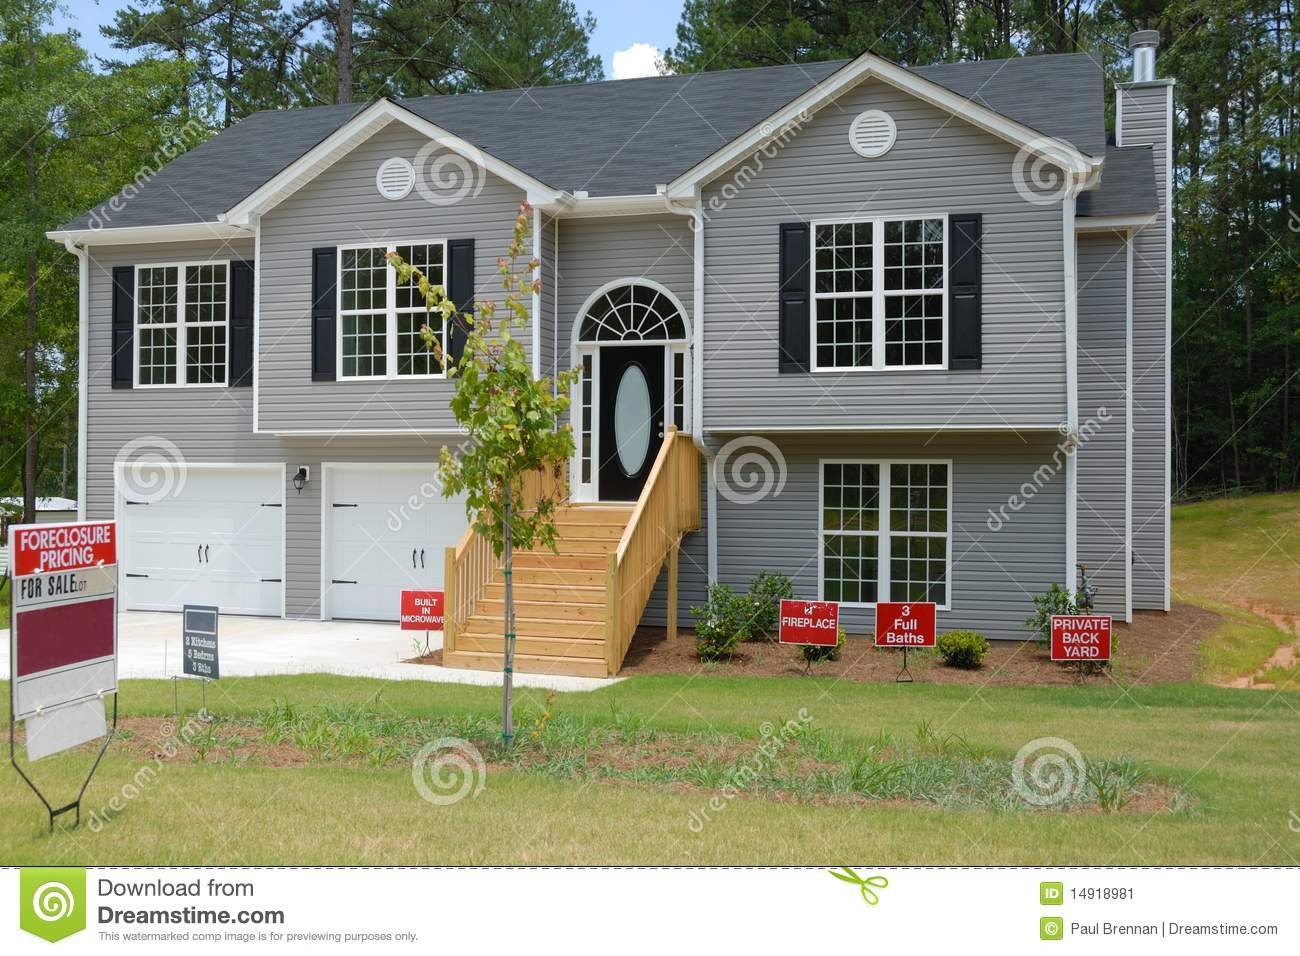 Split Level Home For Sale Stock Image Image 14918981